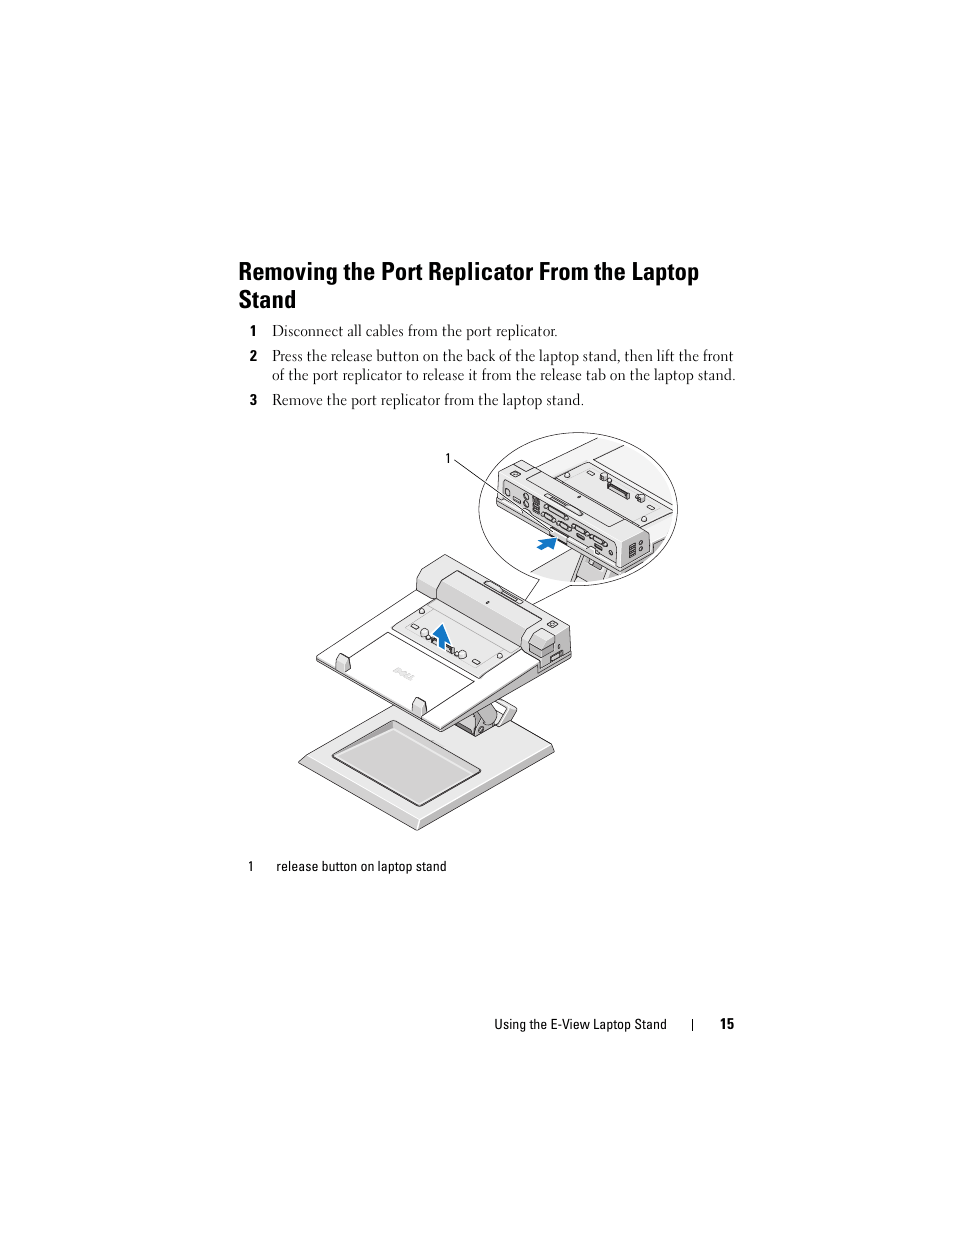 hight resolution of removing the port replicator from the laptop stand dell e view laptop stand user manual page 15 20